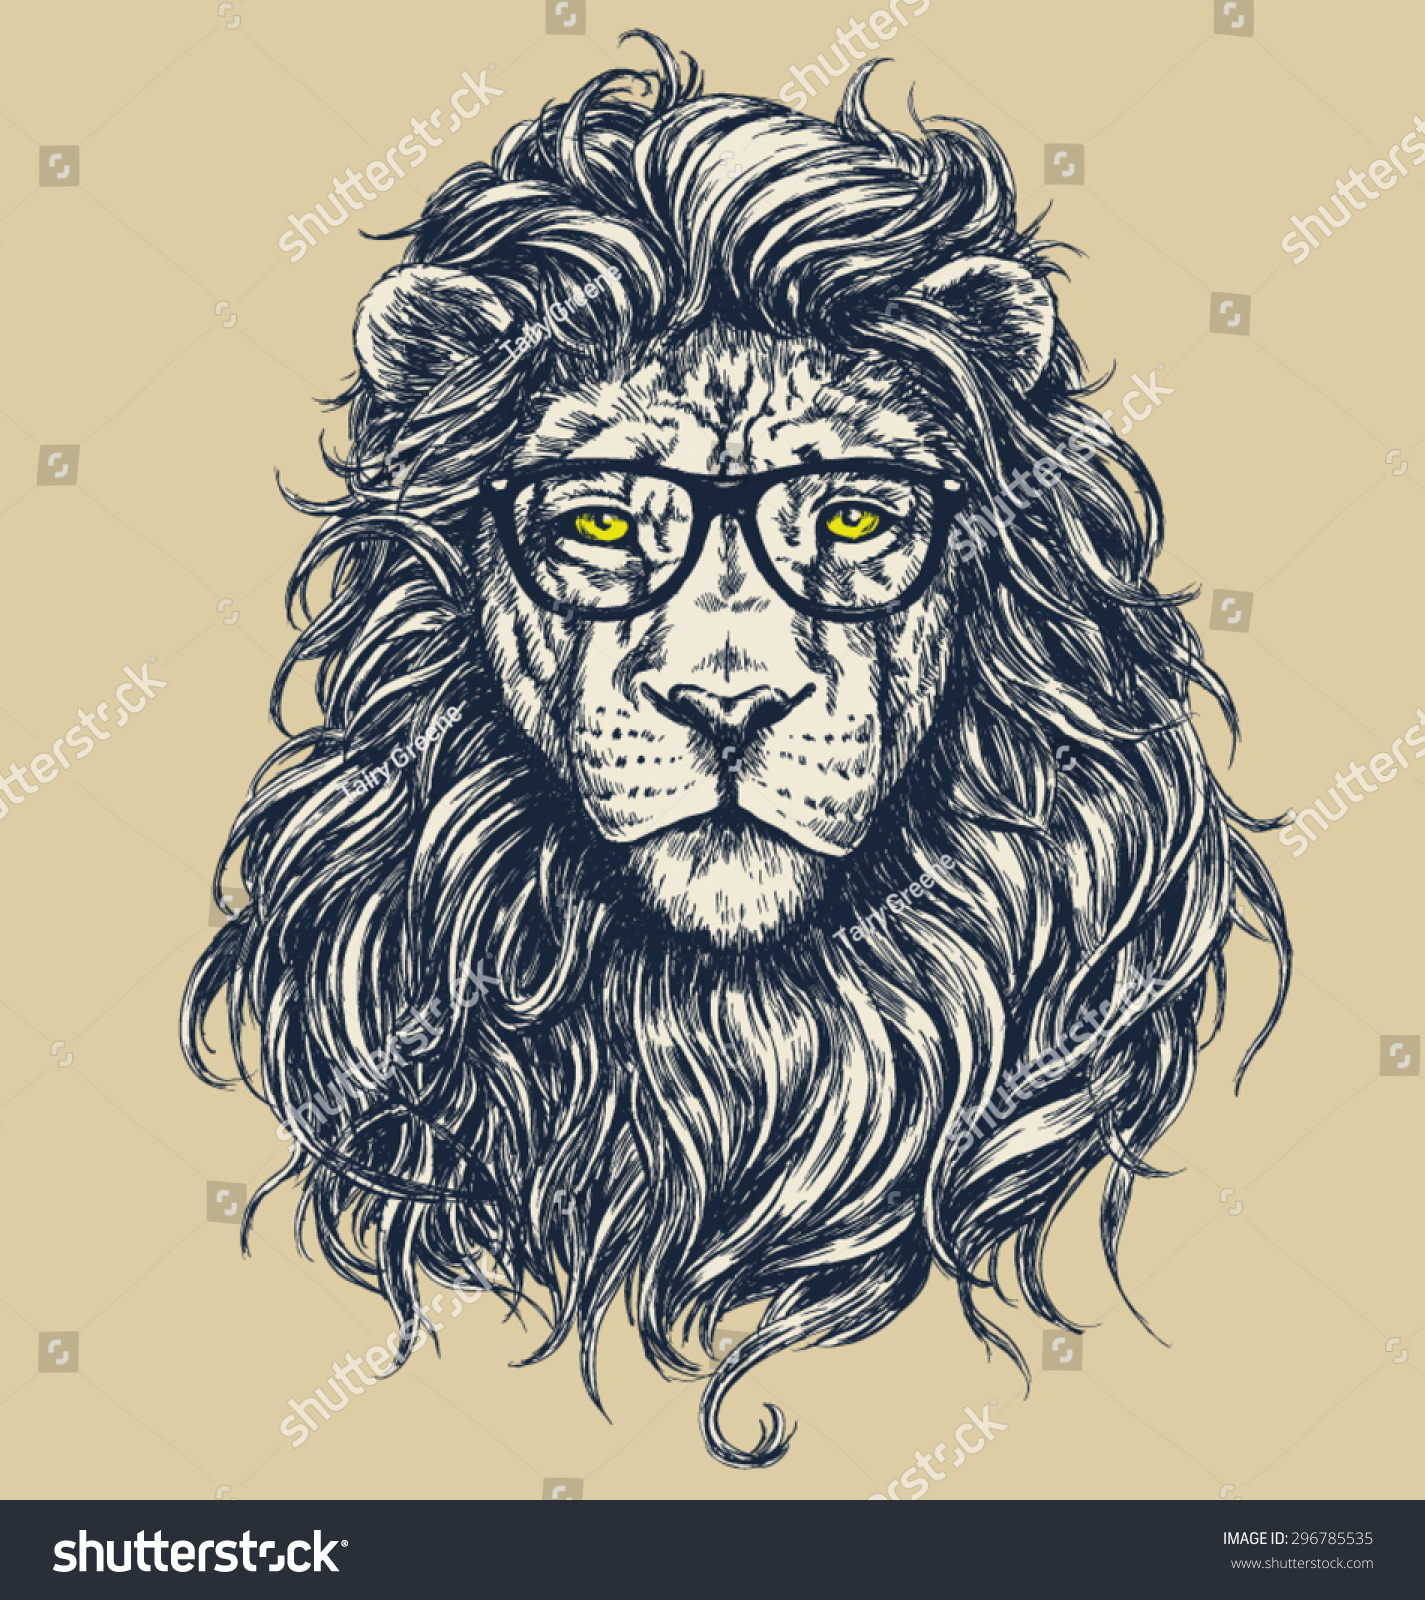 Hipster lion drawing - photo#5